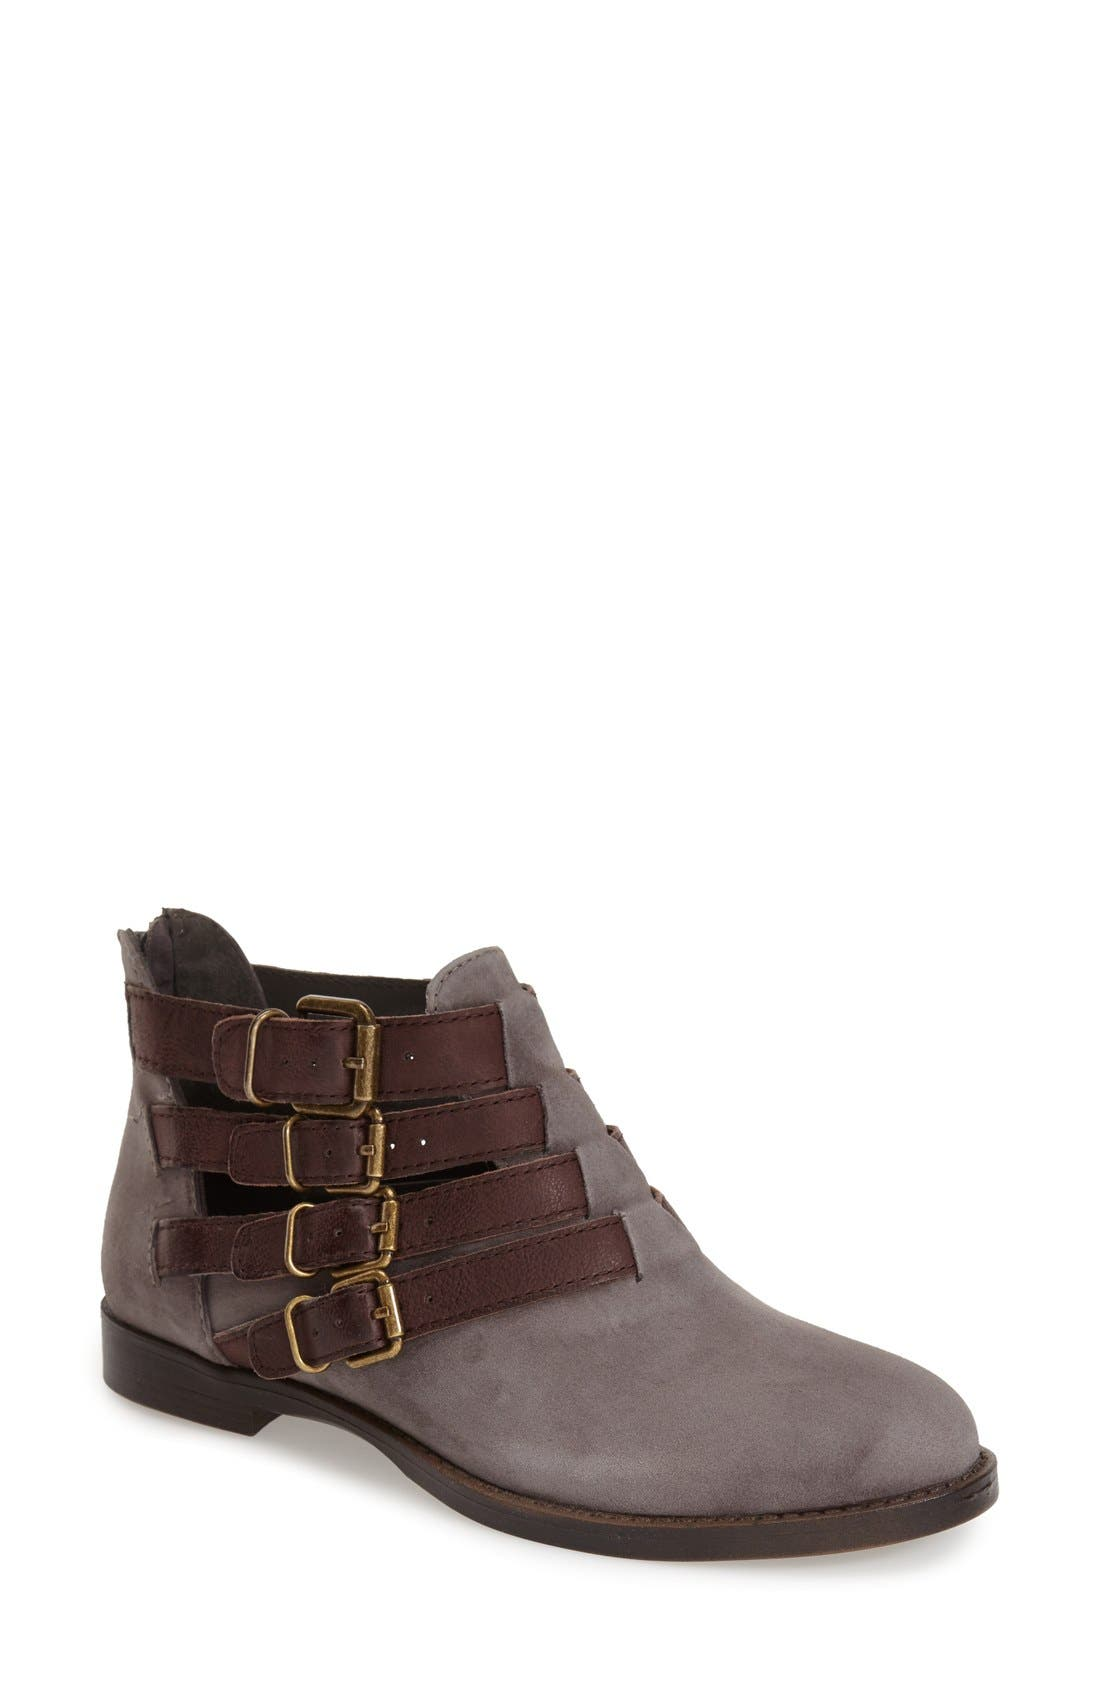 'Ronan' Buckle Leather Bootie,                             Main thumbnail 1, color,                             Grey Suede/ Chestnut